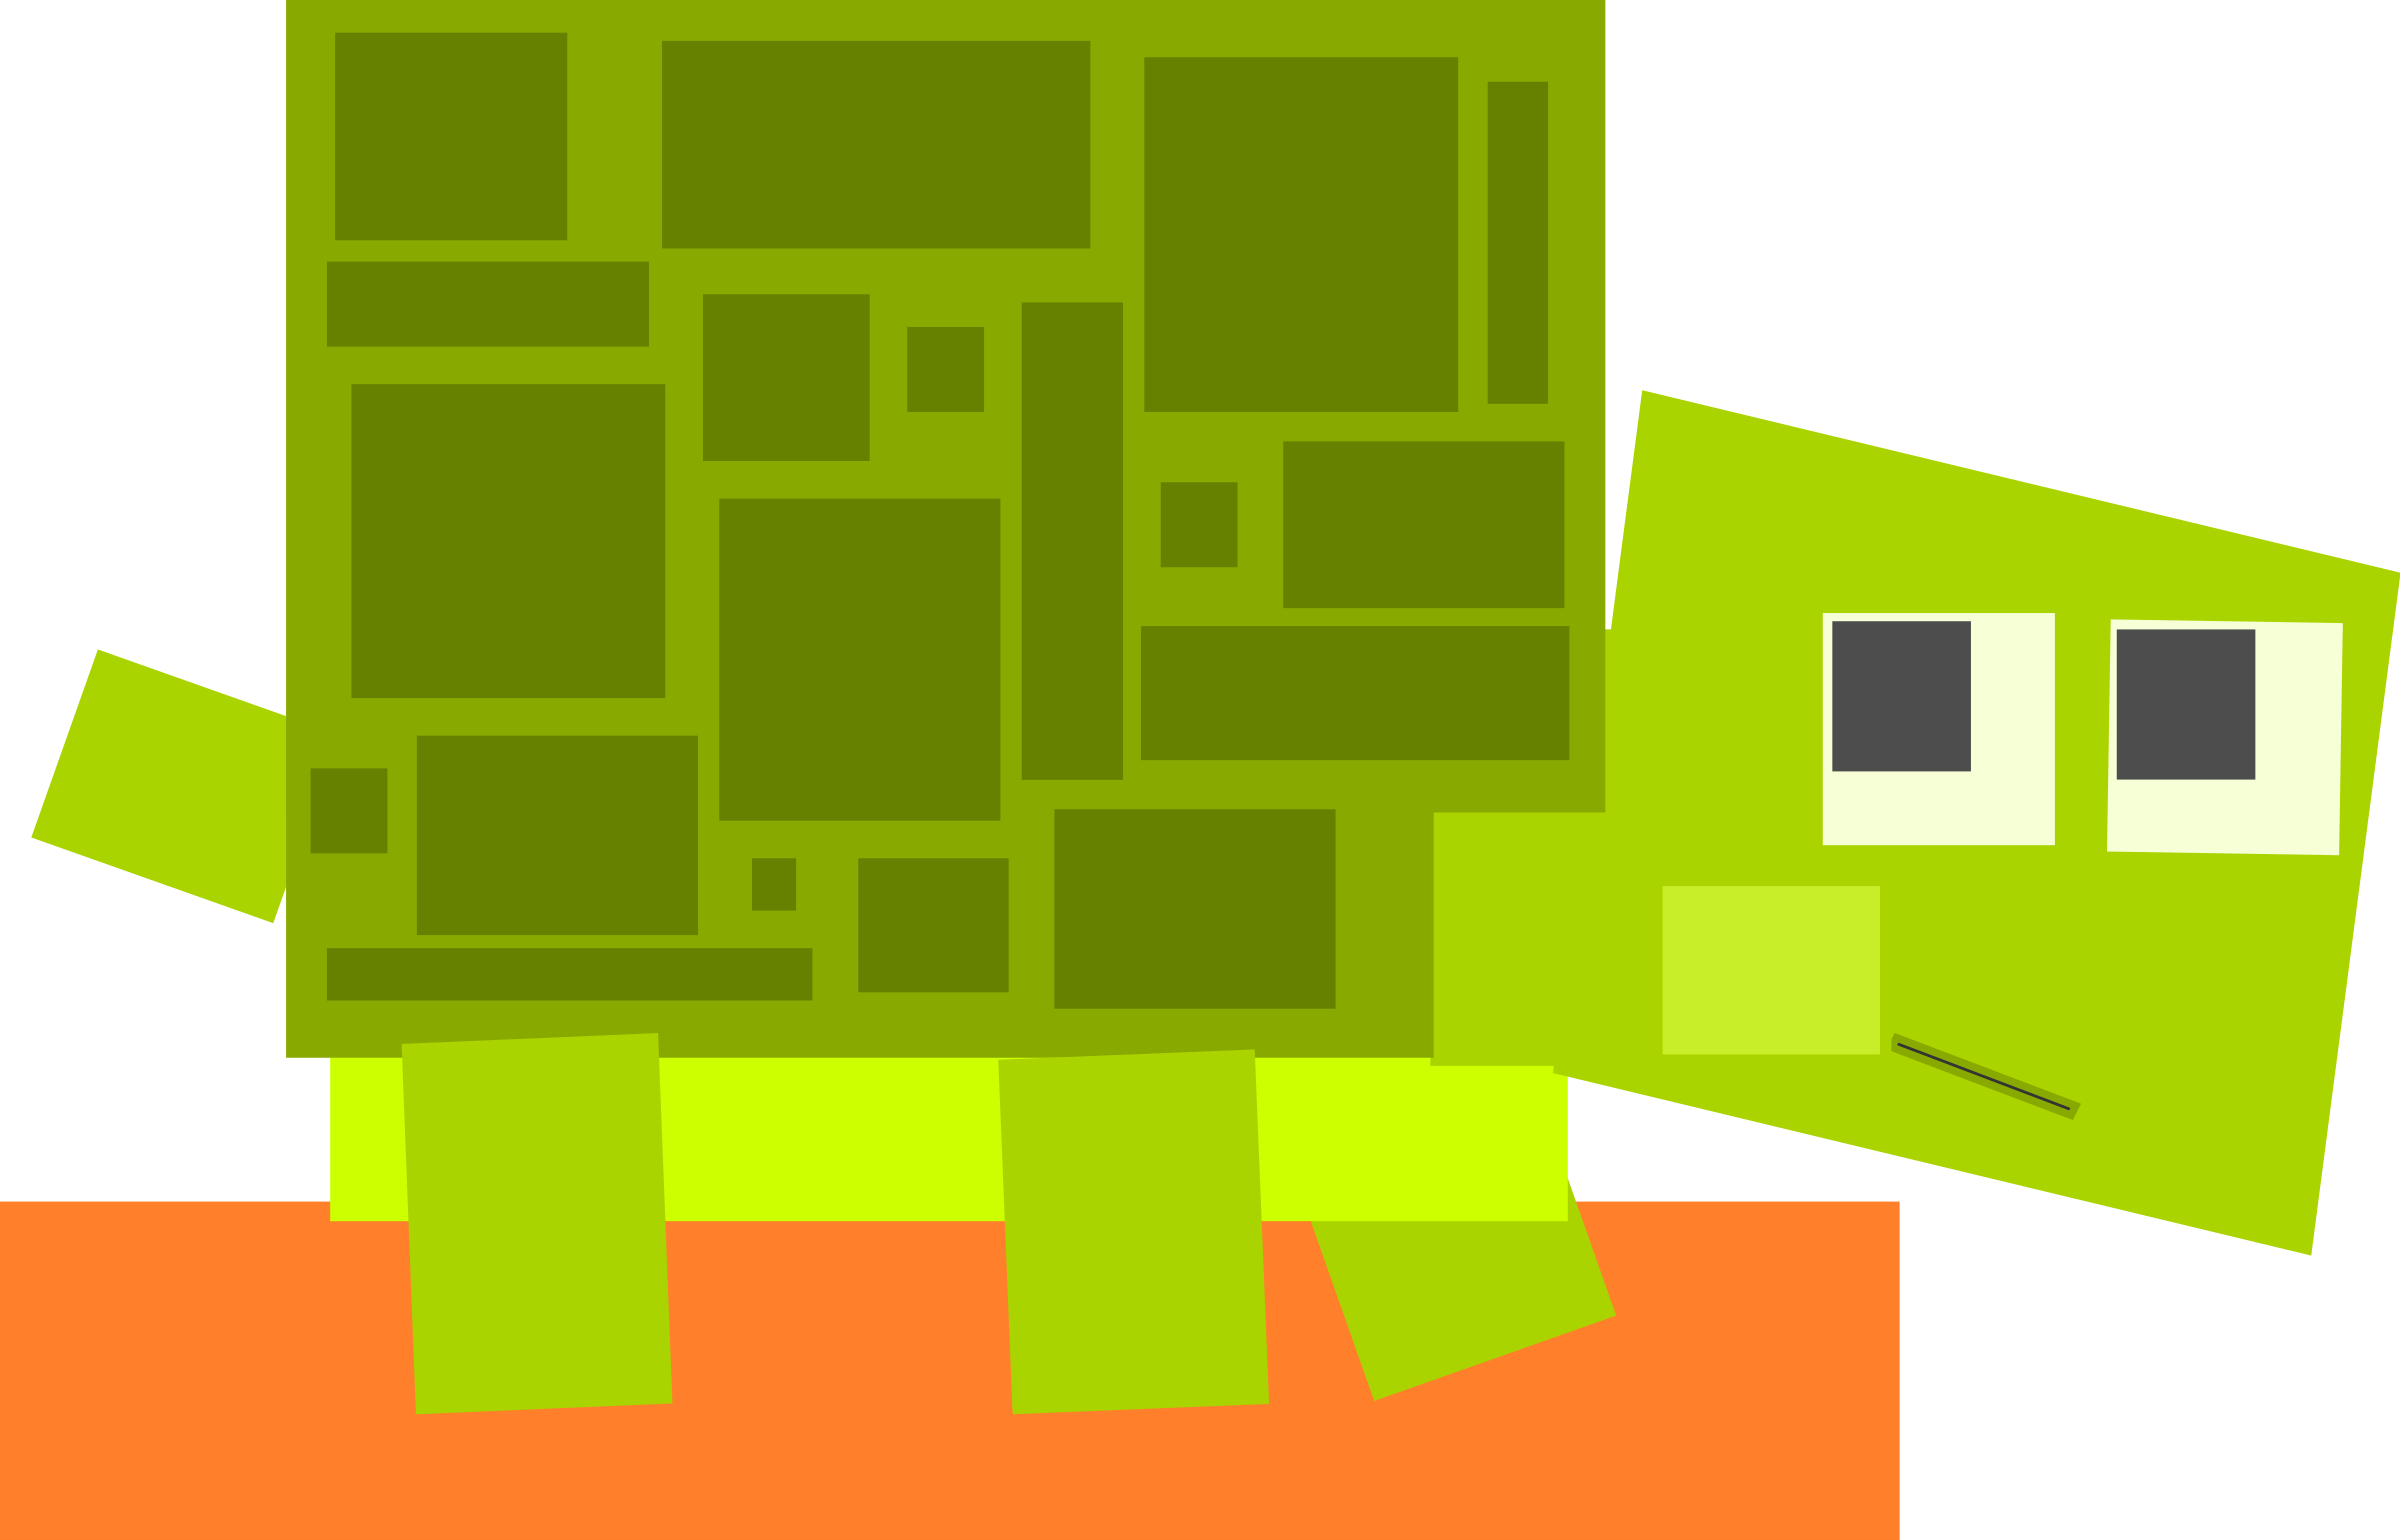 Square animal cartoon turtle by Dog99x